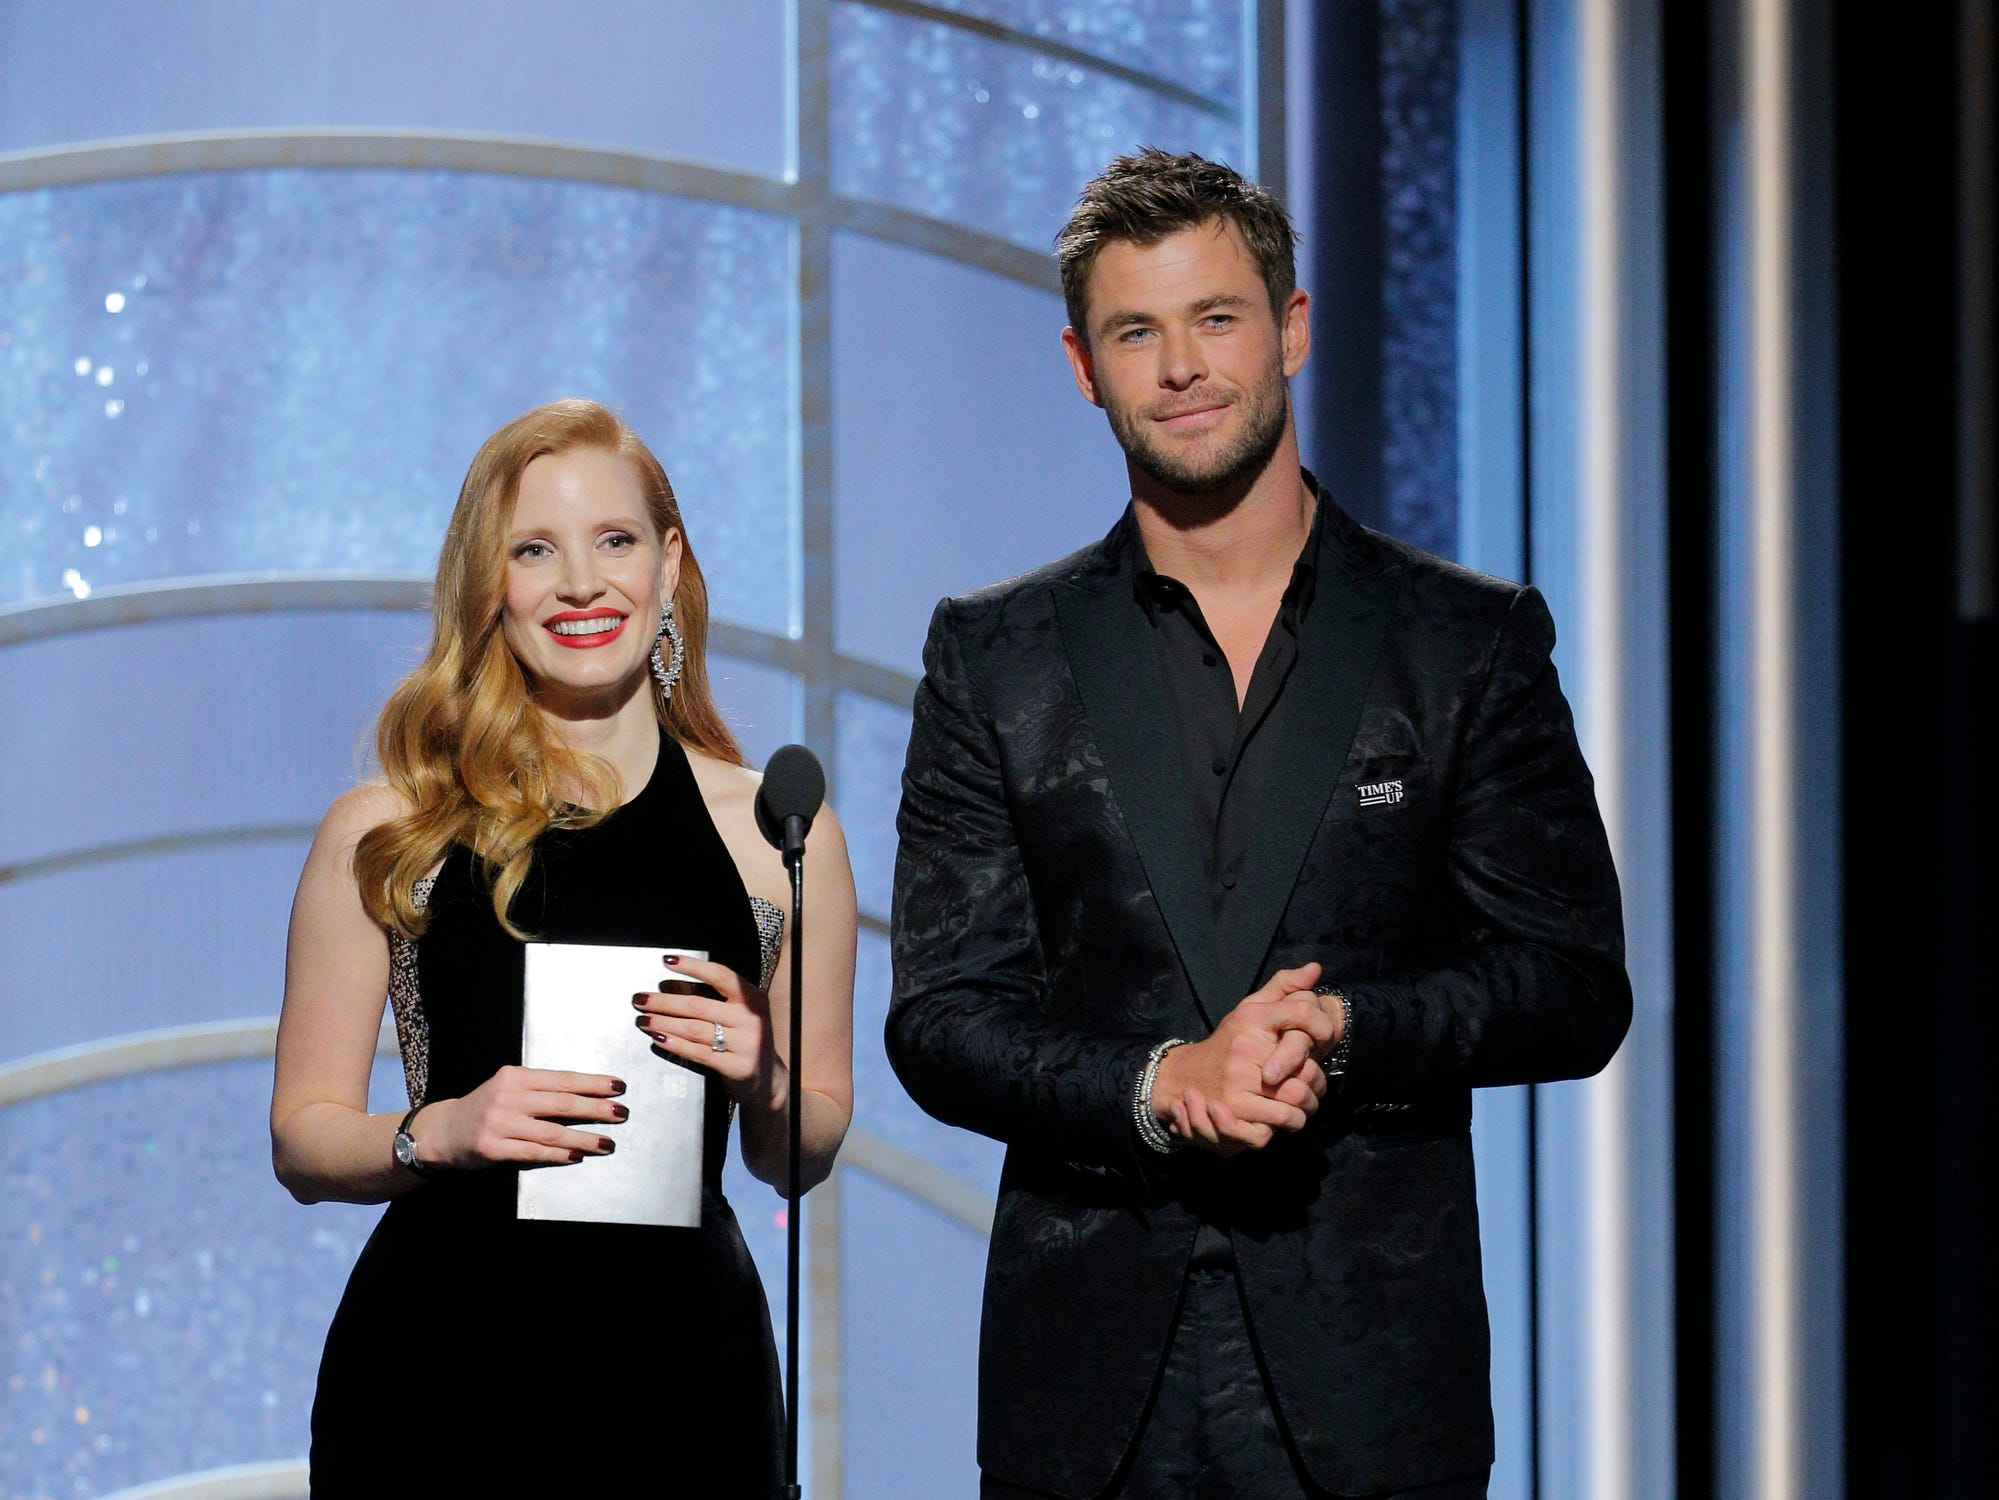 75th ANNUAL GOLDEN GLOBE AWARDS -- Pictured: (l-r) Jessica Chastain, Chris Hemsworth, Presenters at the 75th Annual Golden Globe Awards held at the Beverly Hilton Hotel on January 7, 2018 -- (Photo by: Paul Drinkwater/NBC) ORG XMIT: Season:75 [Via MerlinFTP Drop]